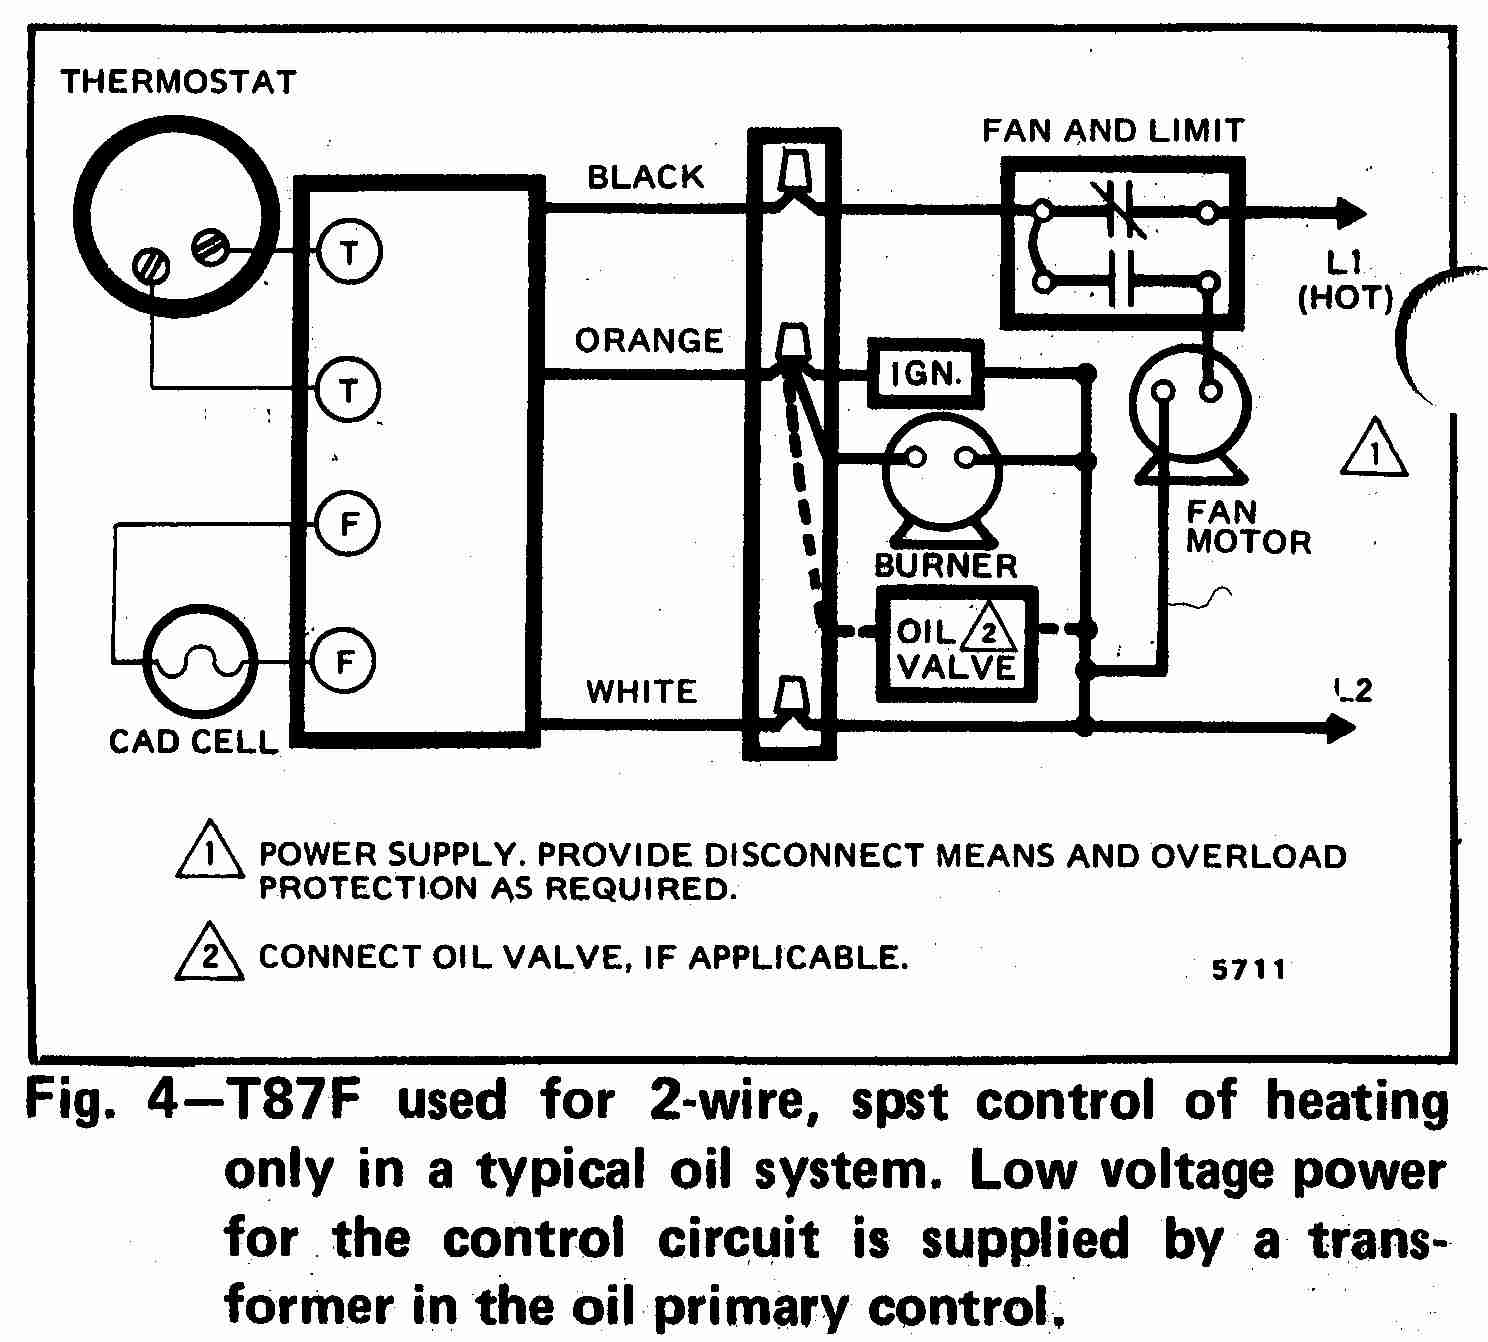 TT_T87F_0002_2W_DJF room thermostat wiring diagrams for hvac systems 24v thermostat wiring diagram at gsmx.co